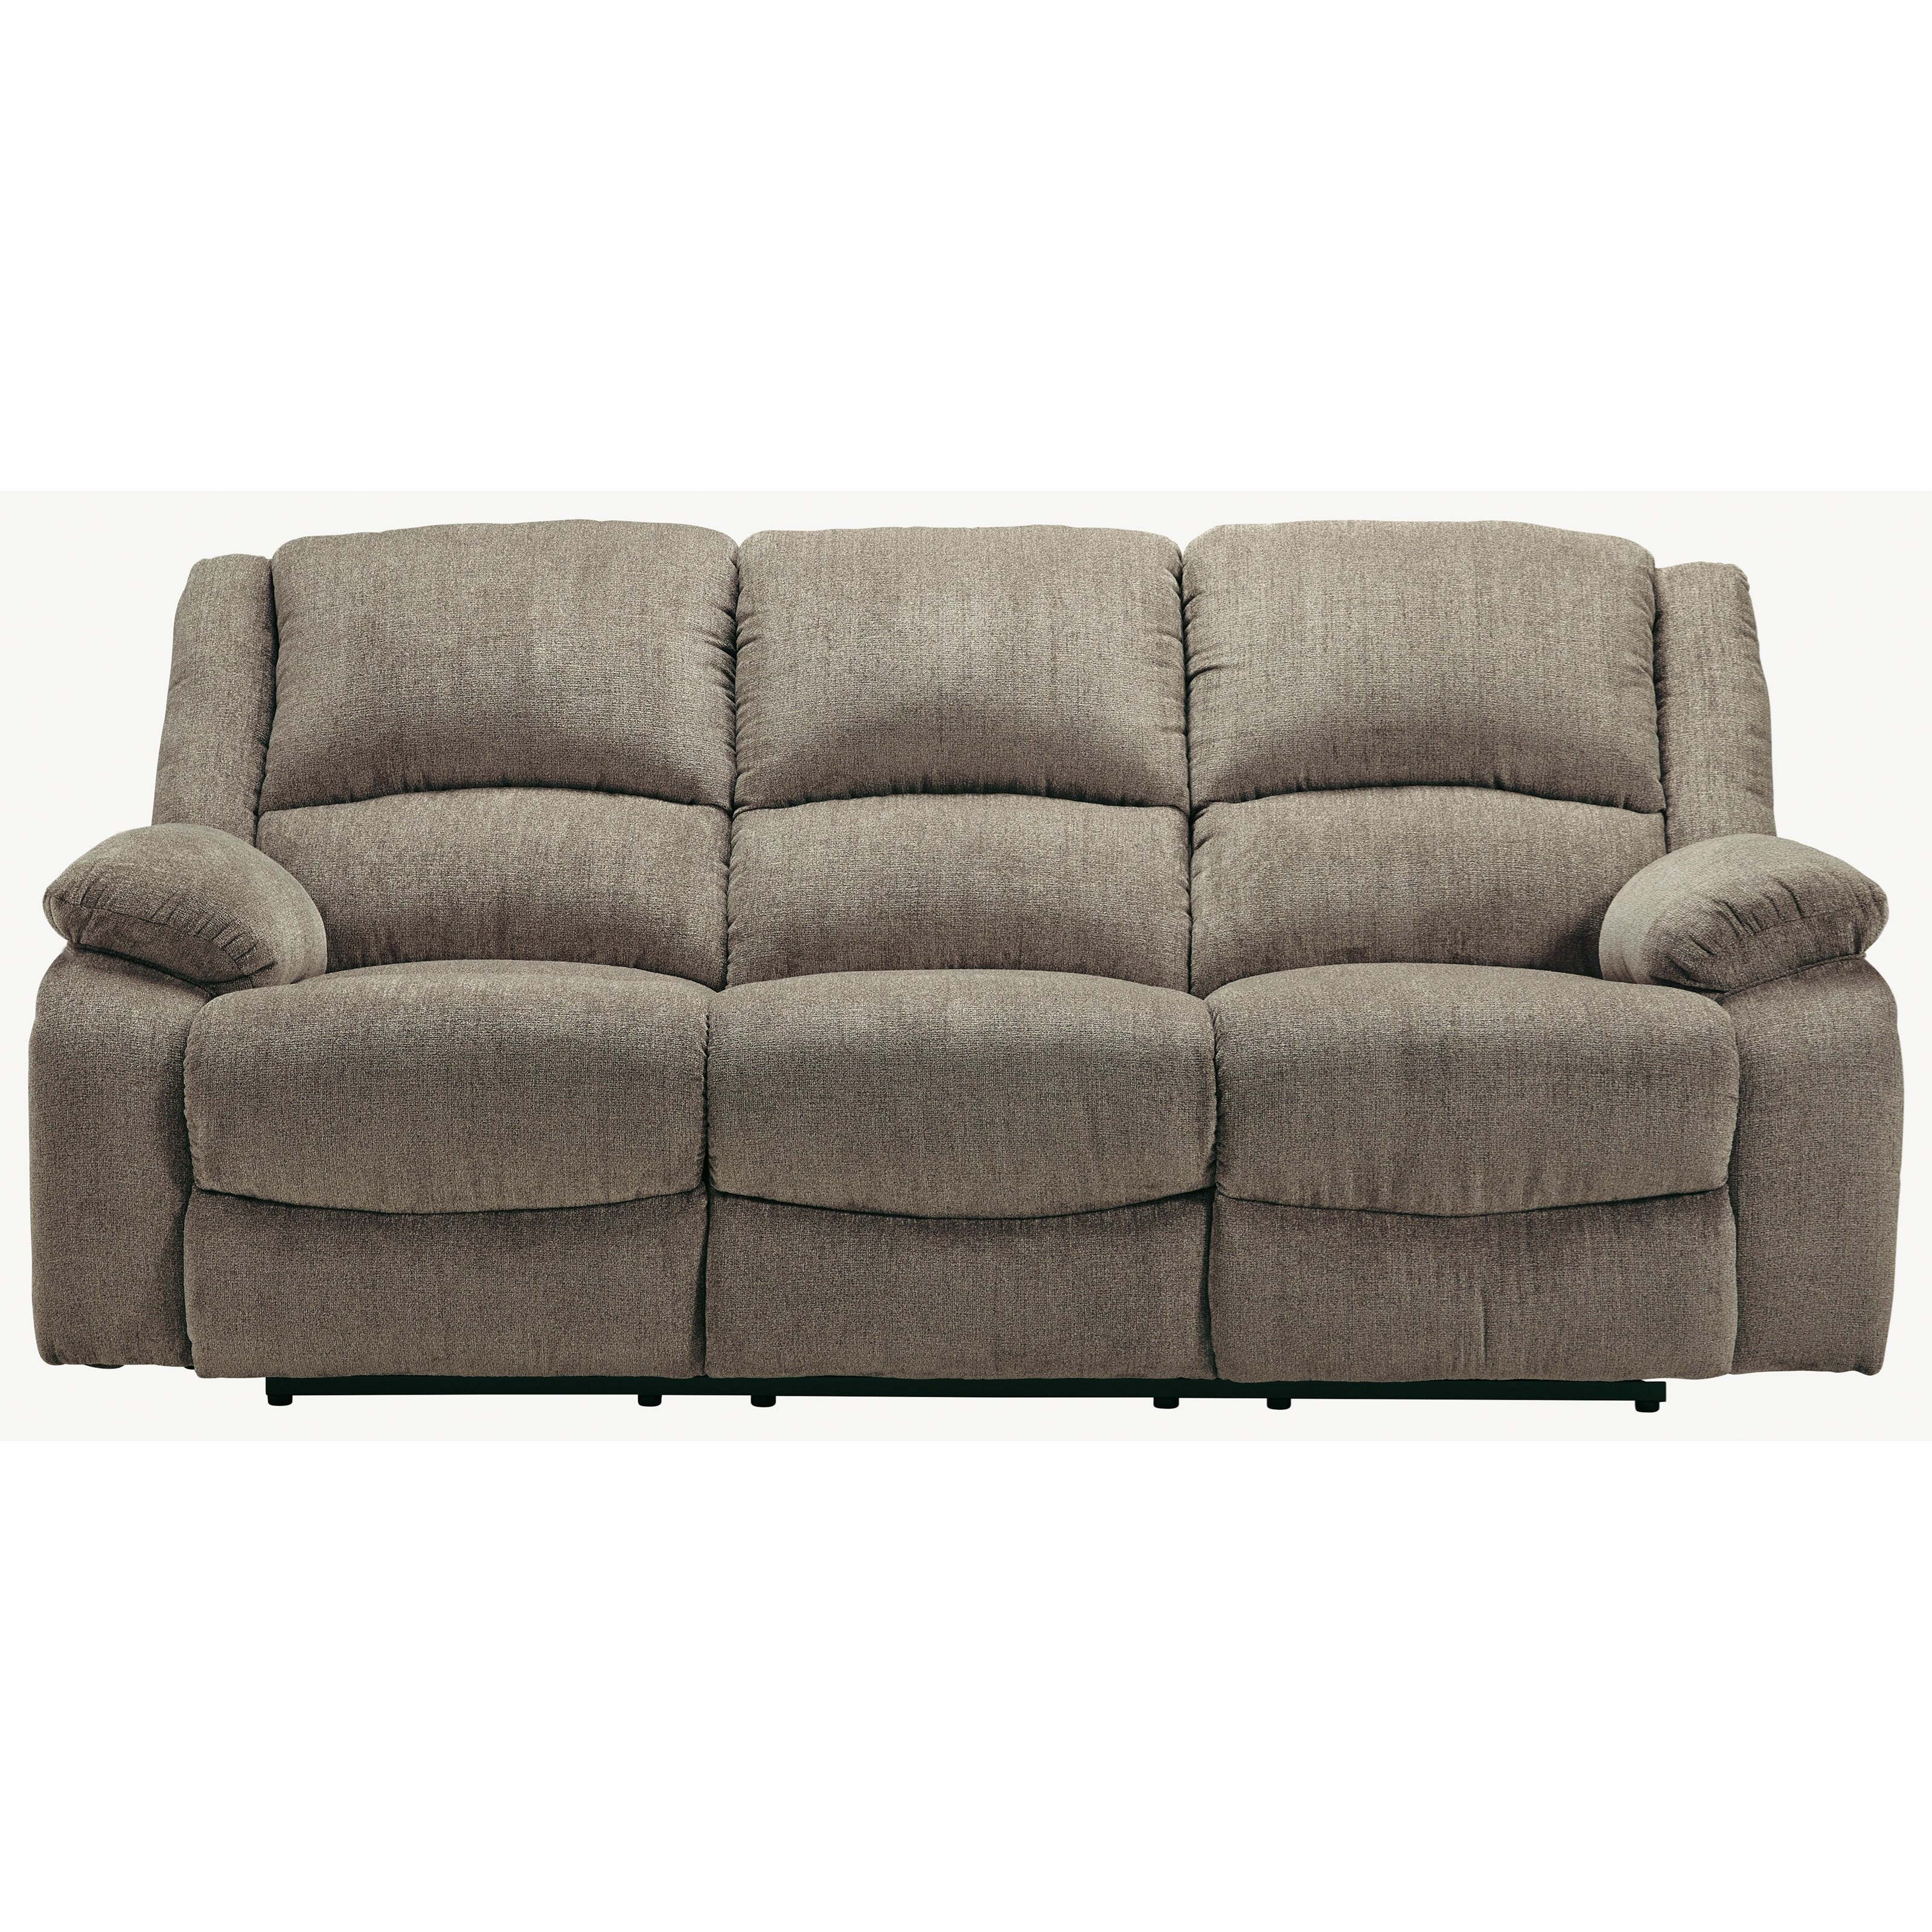 Draycoll Reclining Power Sofa by Signature Design by Ashley at Zak's Home Outlet